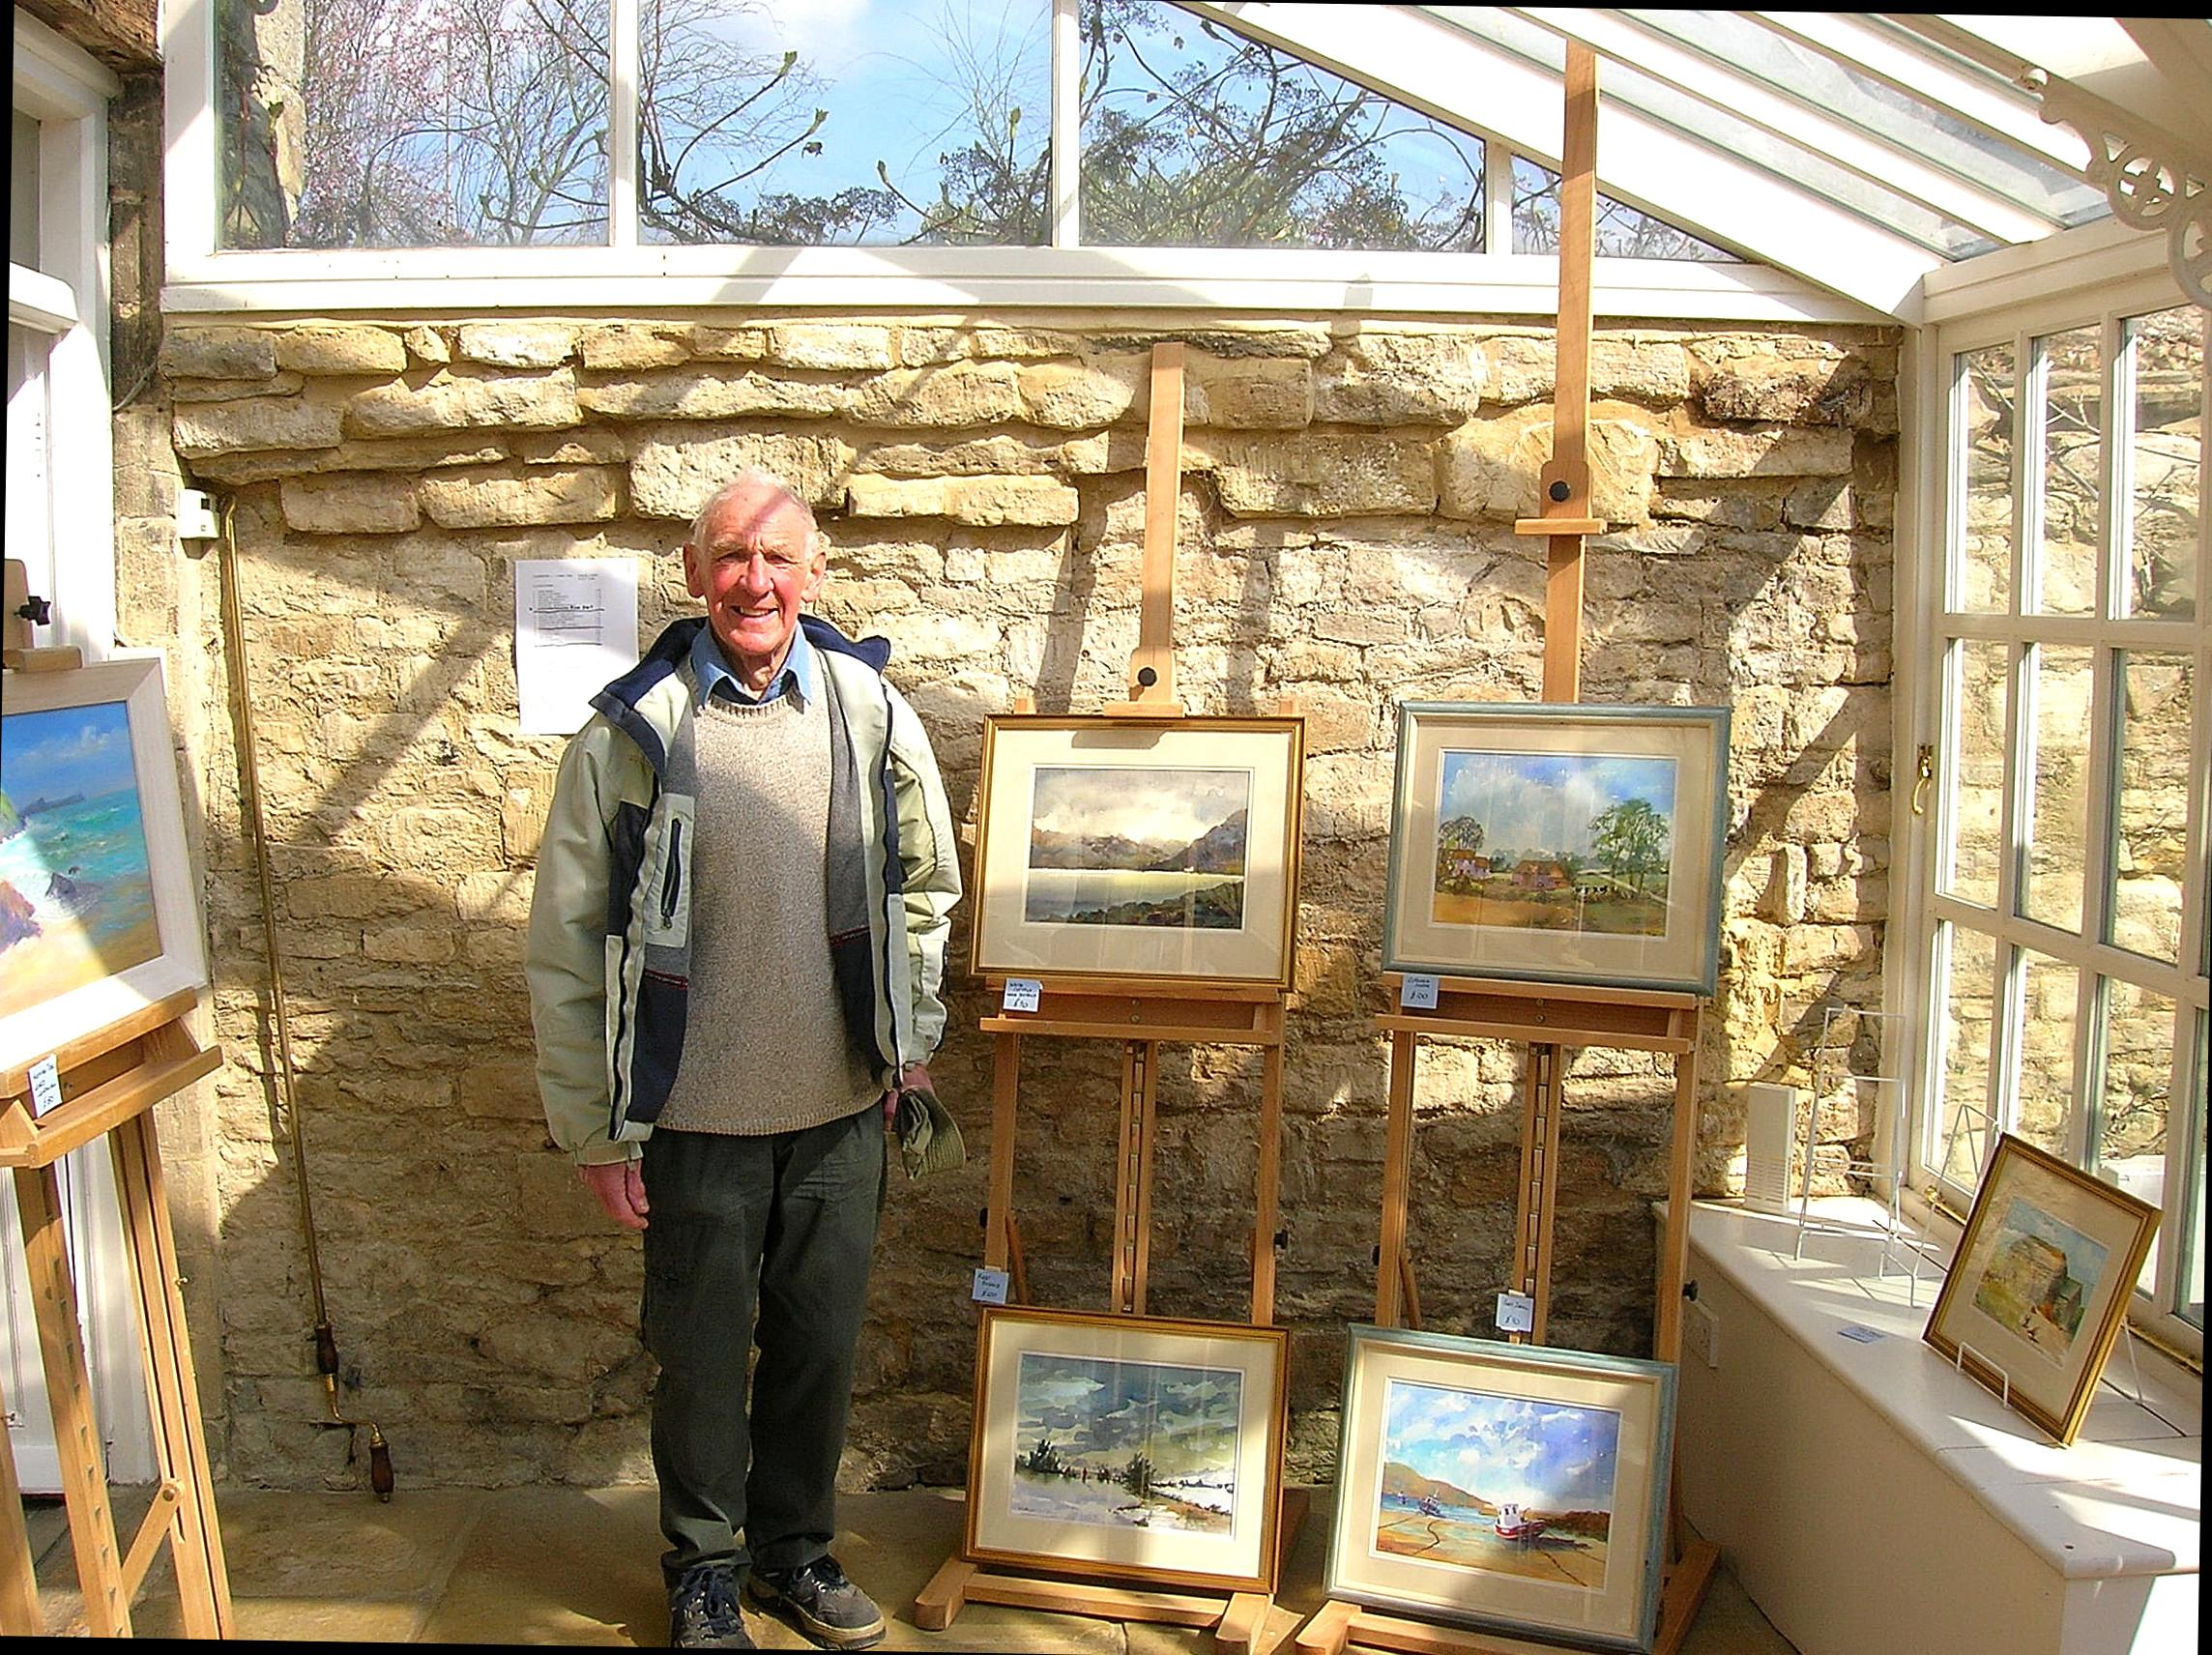 Derek stands inside a conservatory surrounded by easels displaying some of his paintings